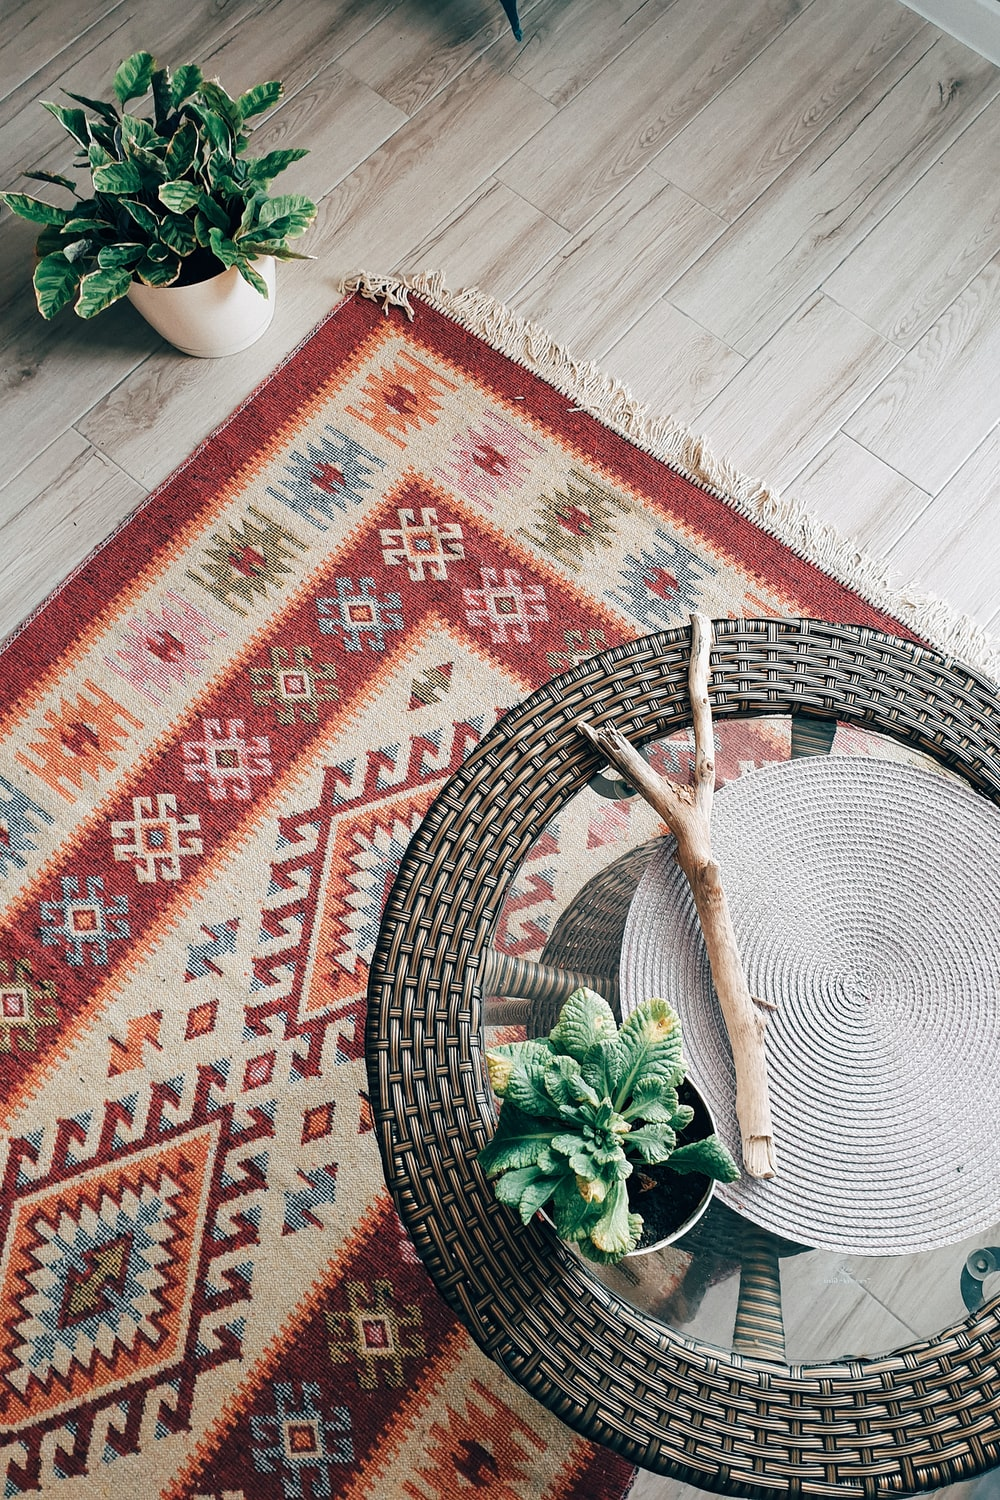 green plant on red and white area rug